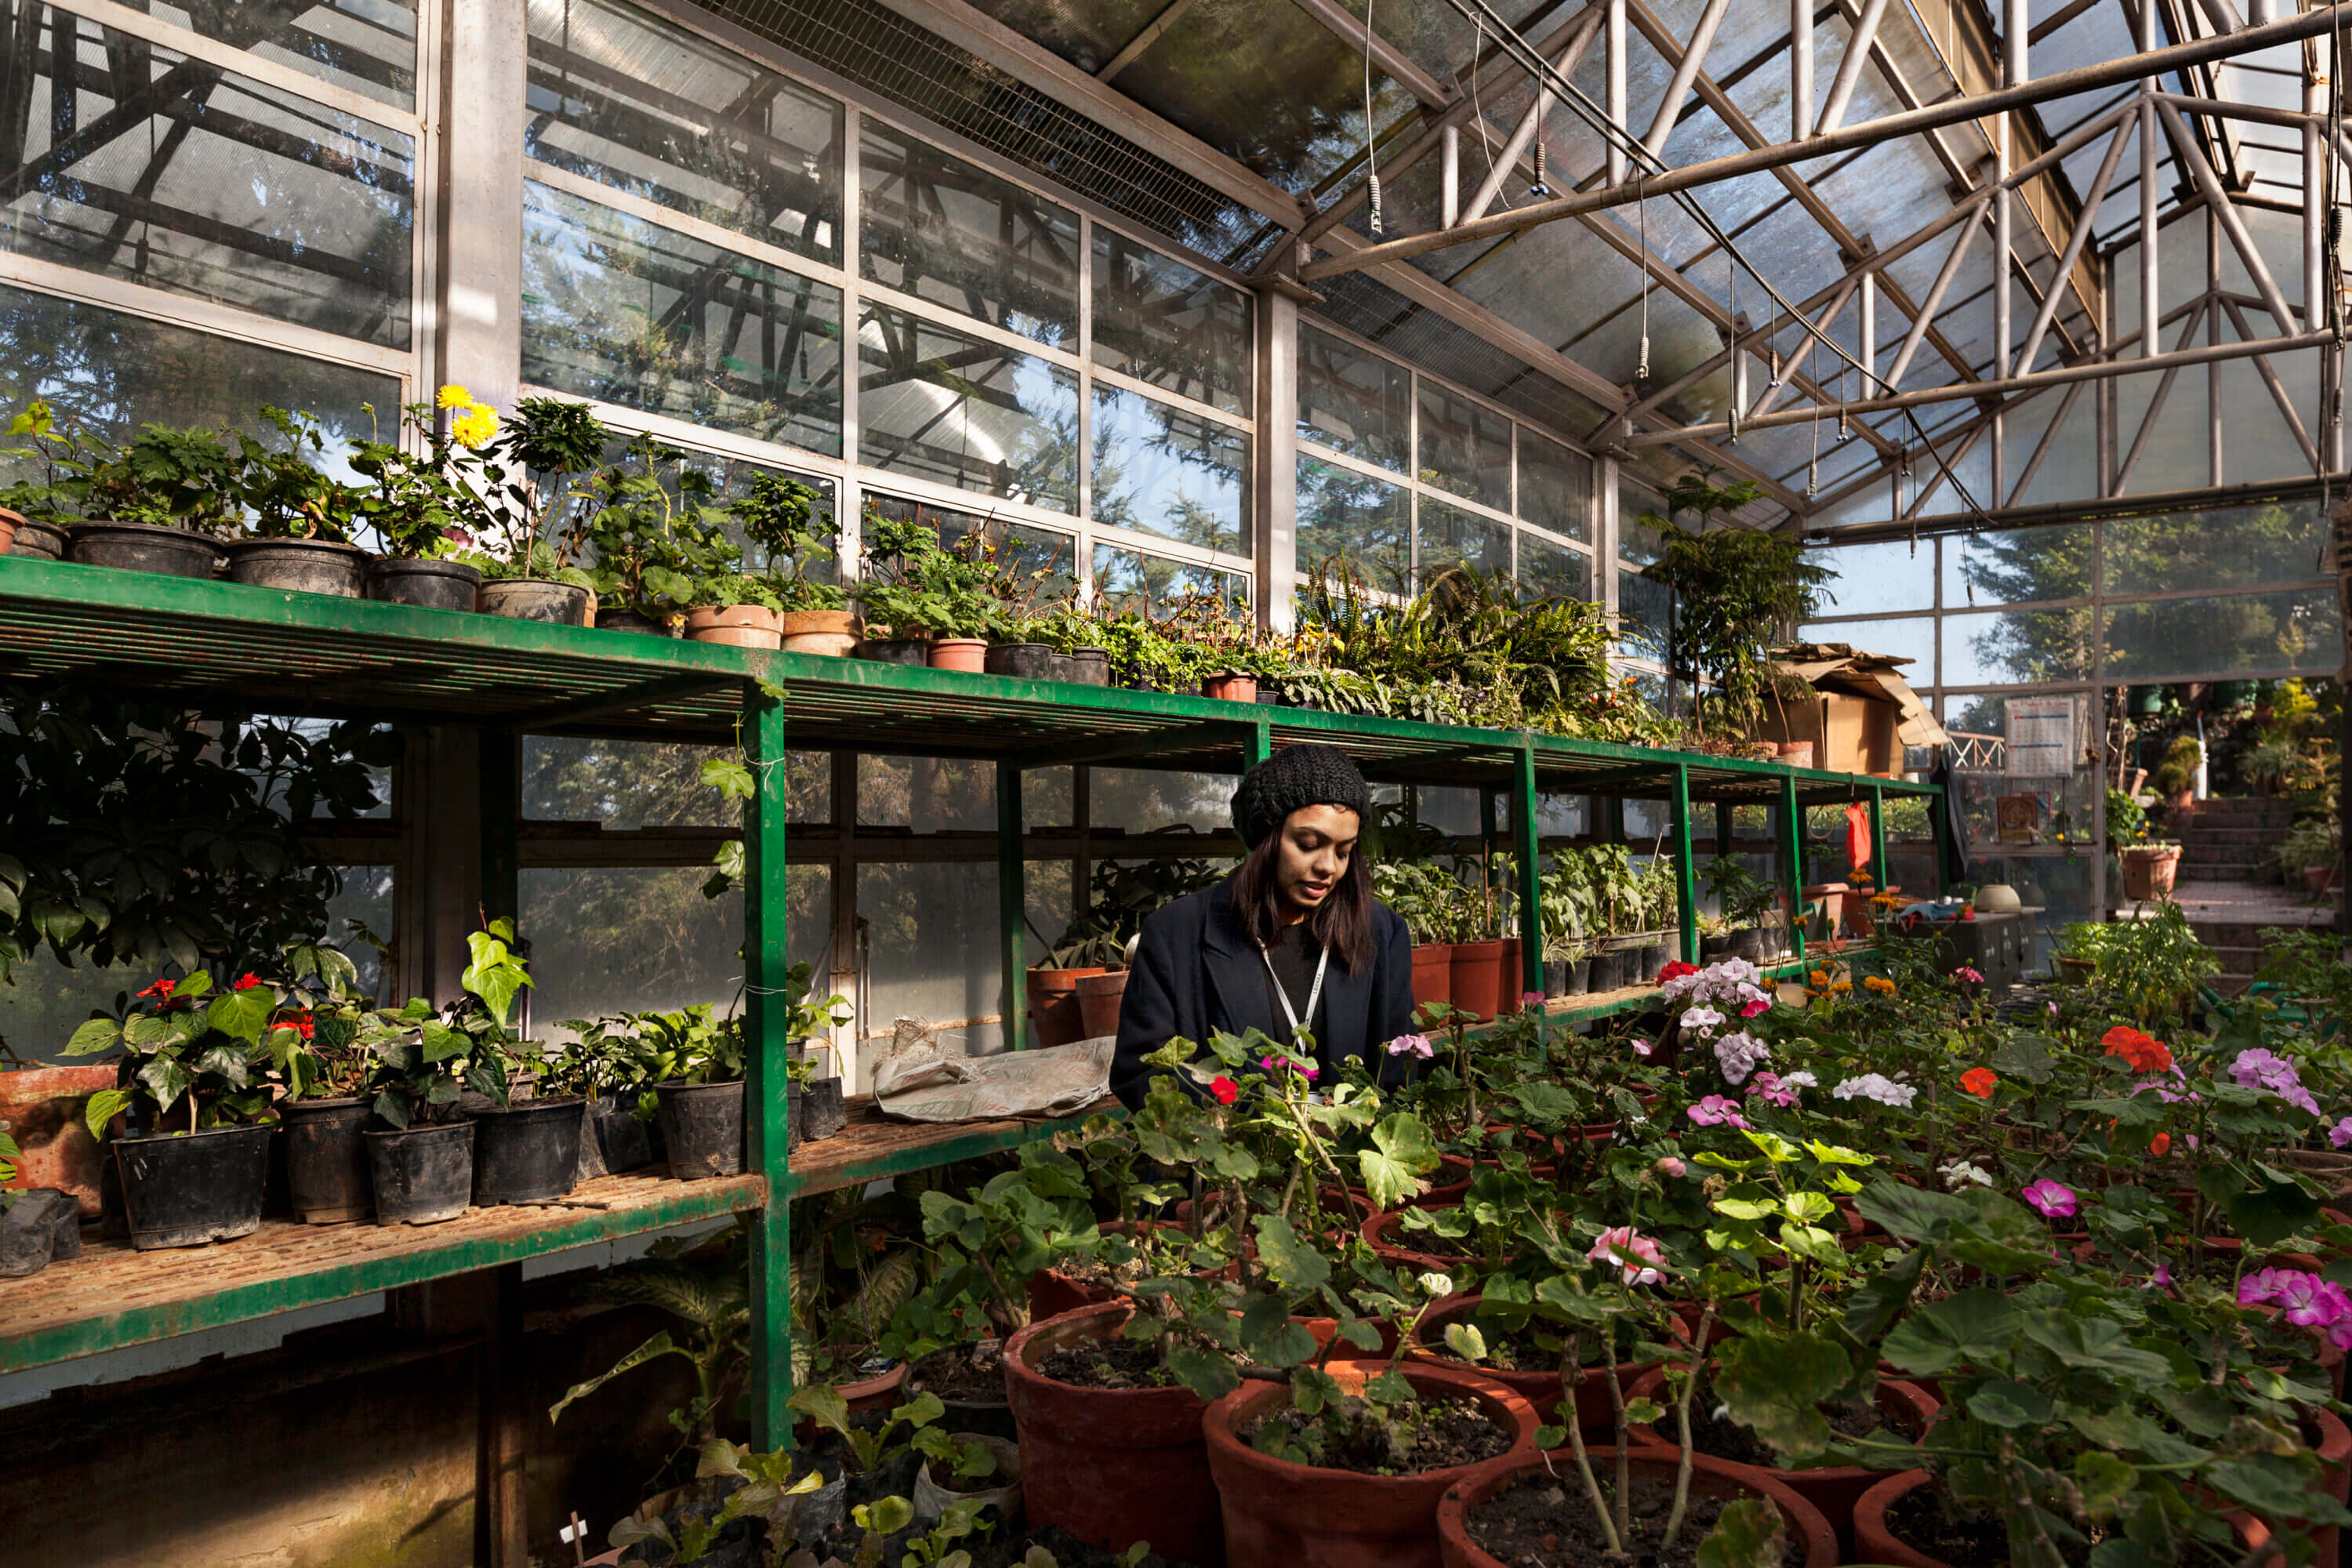 Journalist Sonali Prasad is surrounded by lush green plants and looking towards one of them